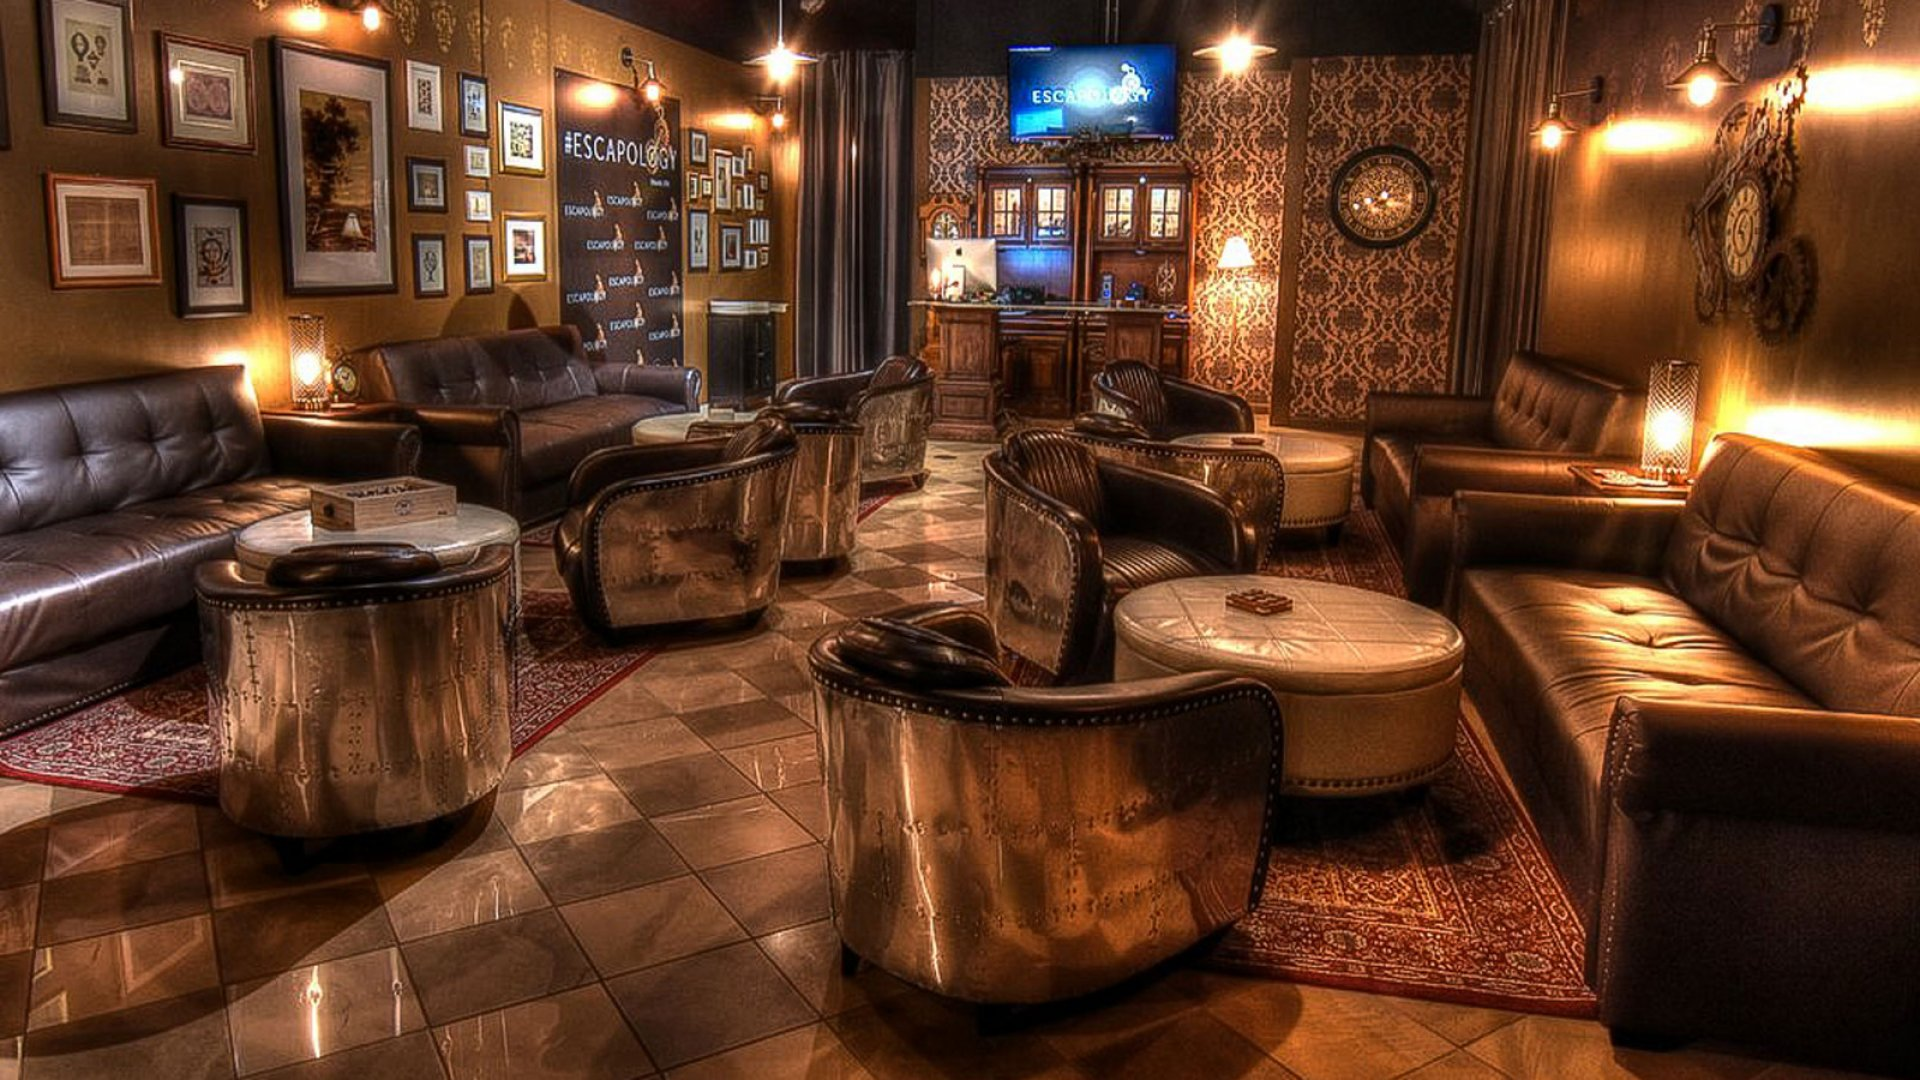 The Escapology lobby in Orlando.